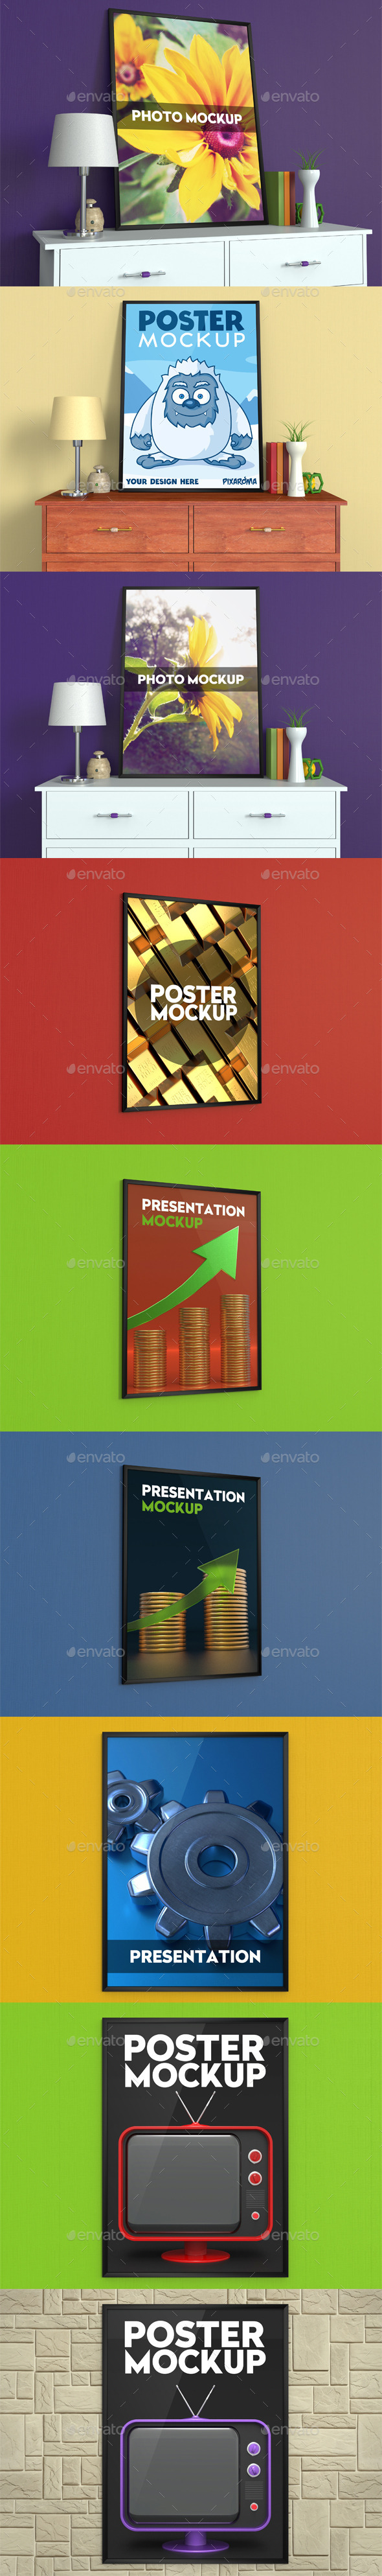 GraphicRiver Poster and Photo Mockup 10991668